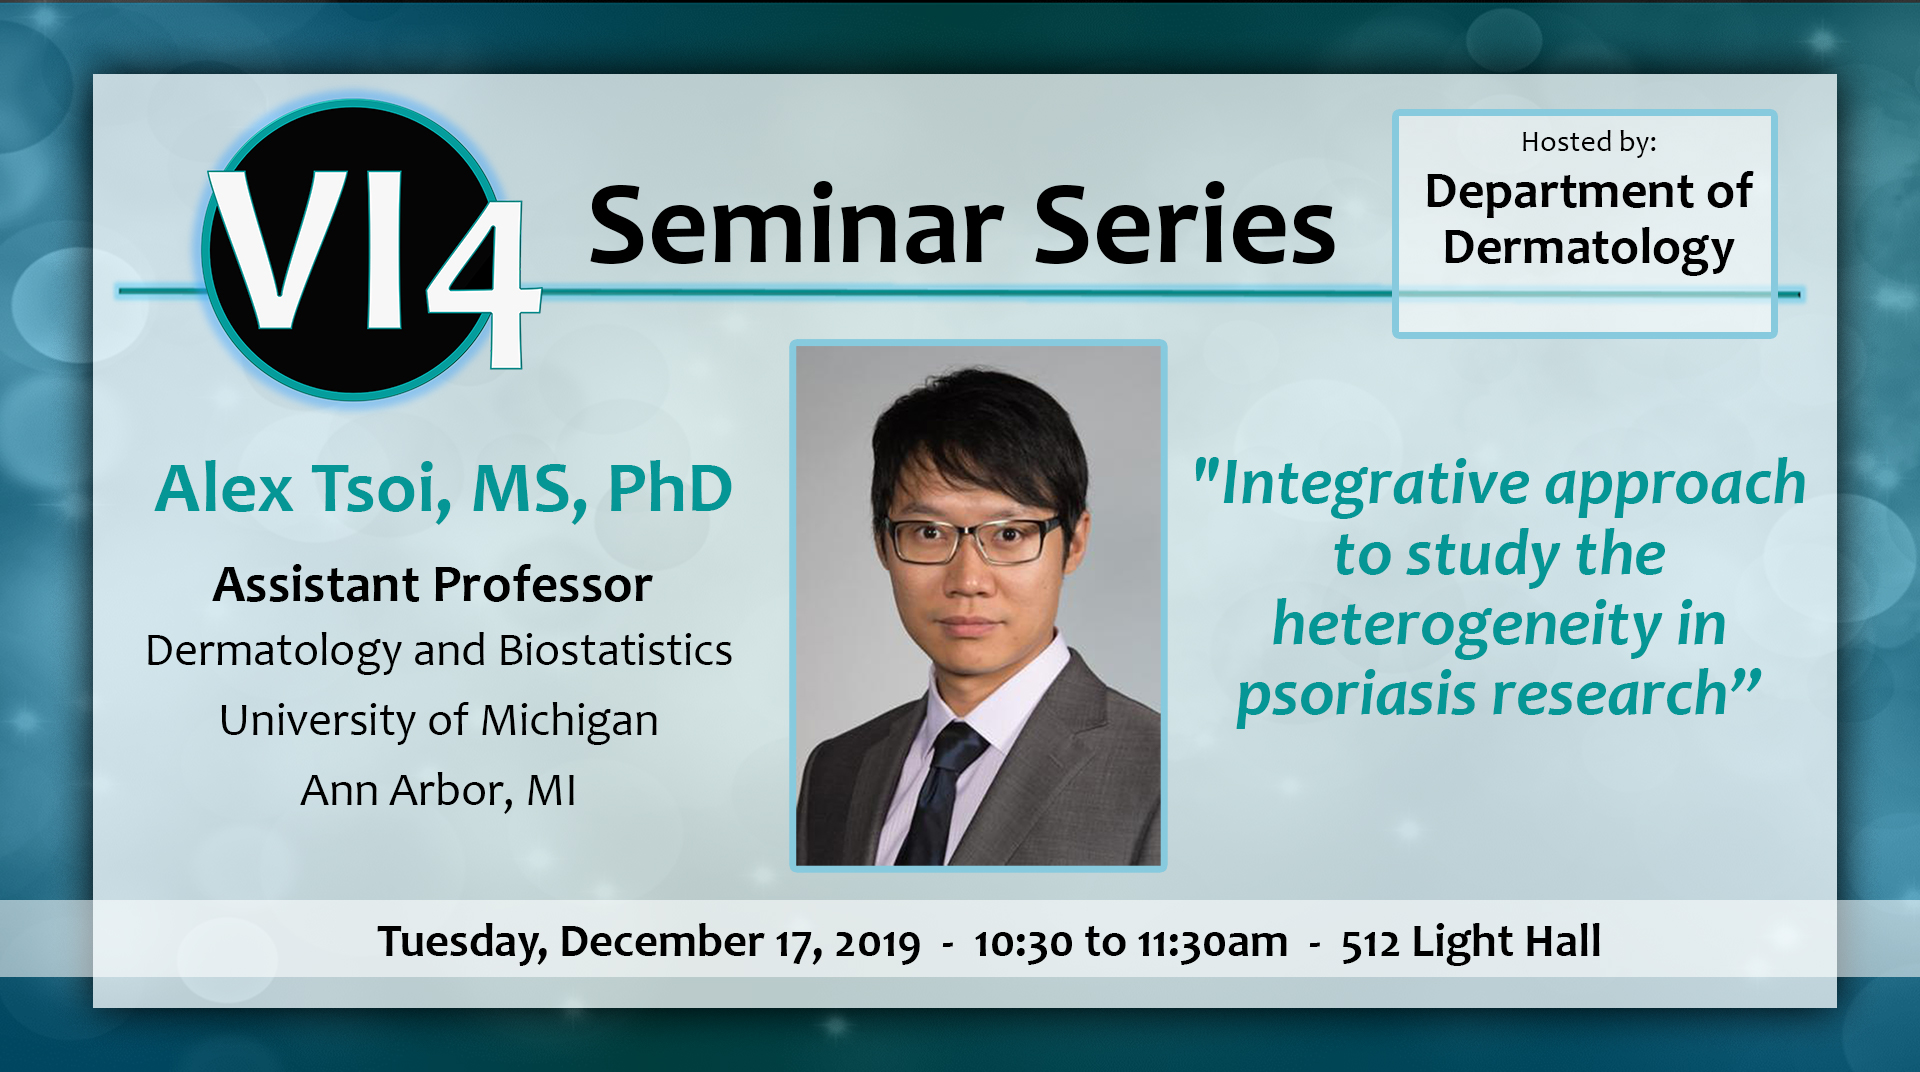 VI4 Seminar with Alex Tsoi, MS, PhD - 12/17